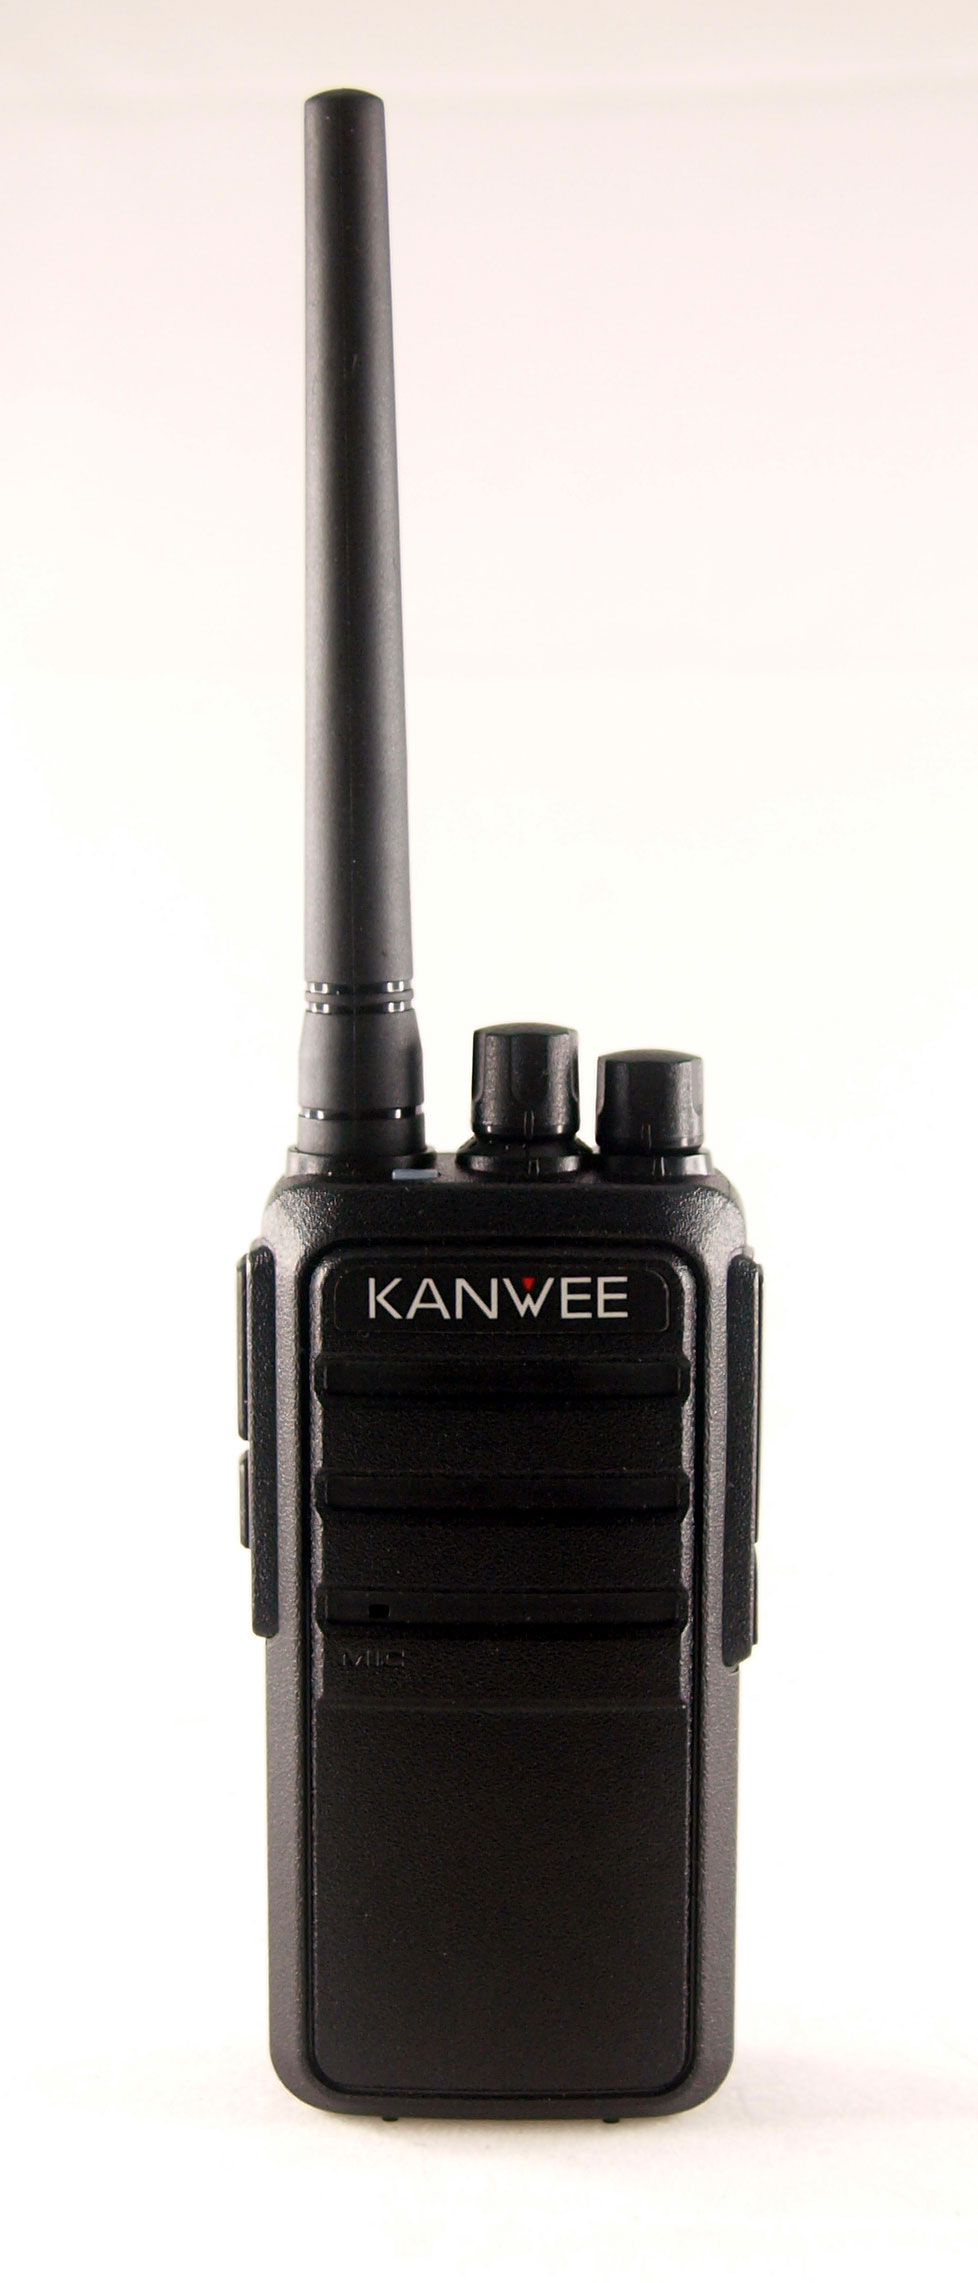 Kanwee X-3 by TYT VHF handheld transceiver with 16 channel memory